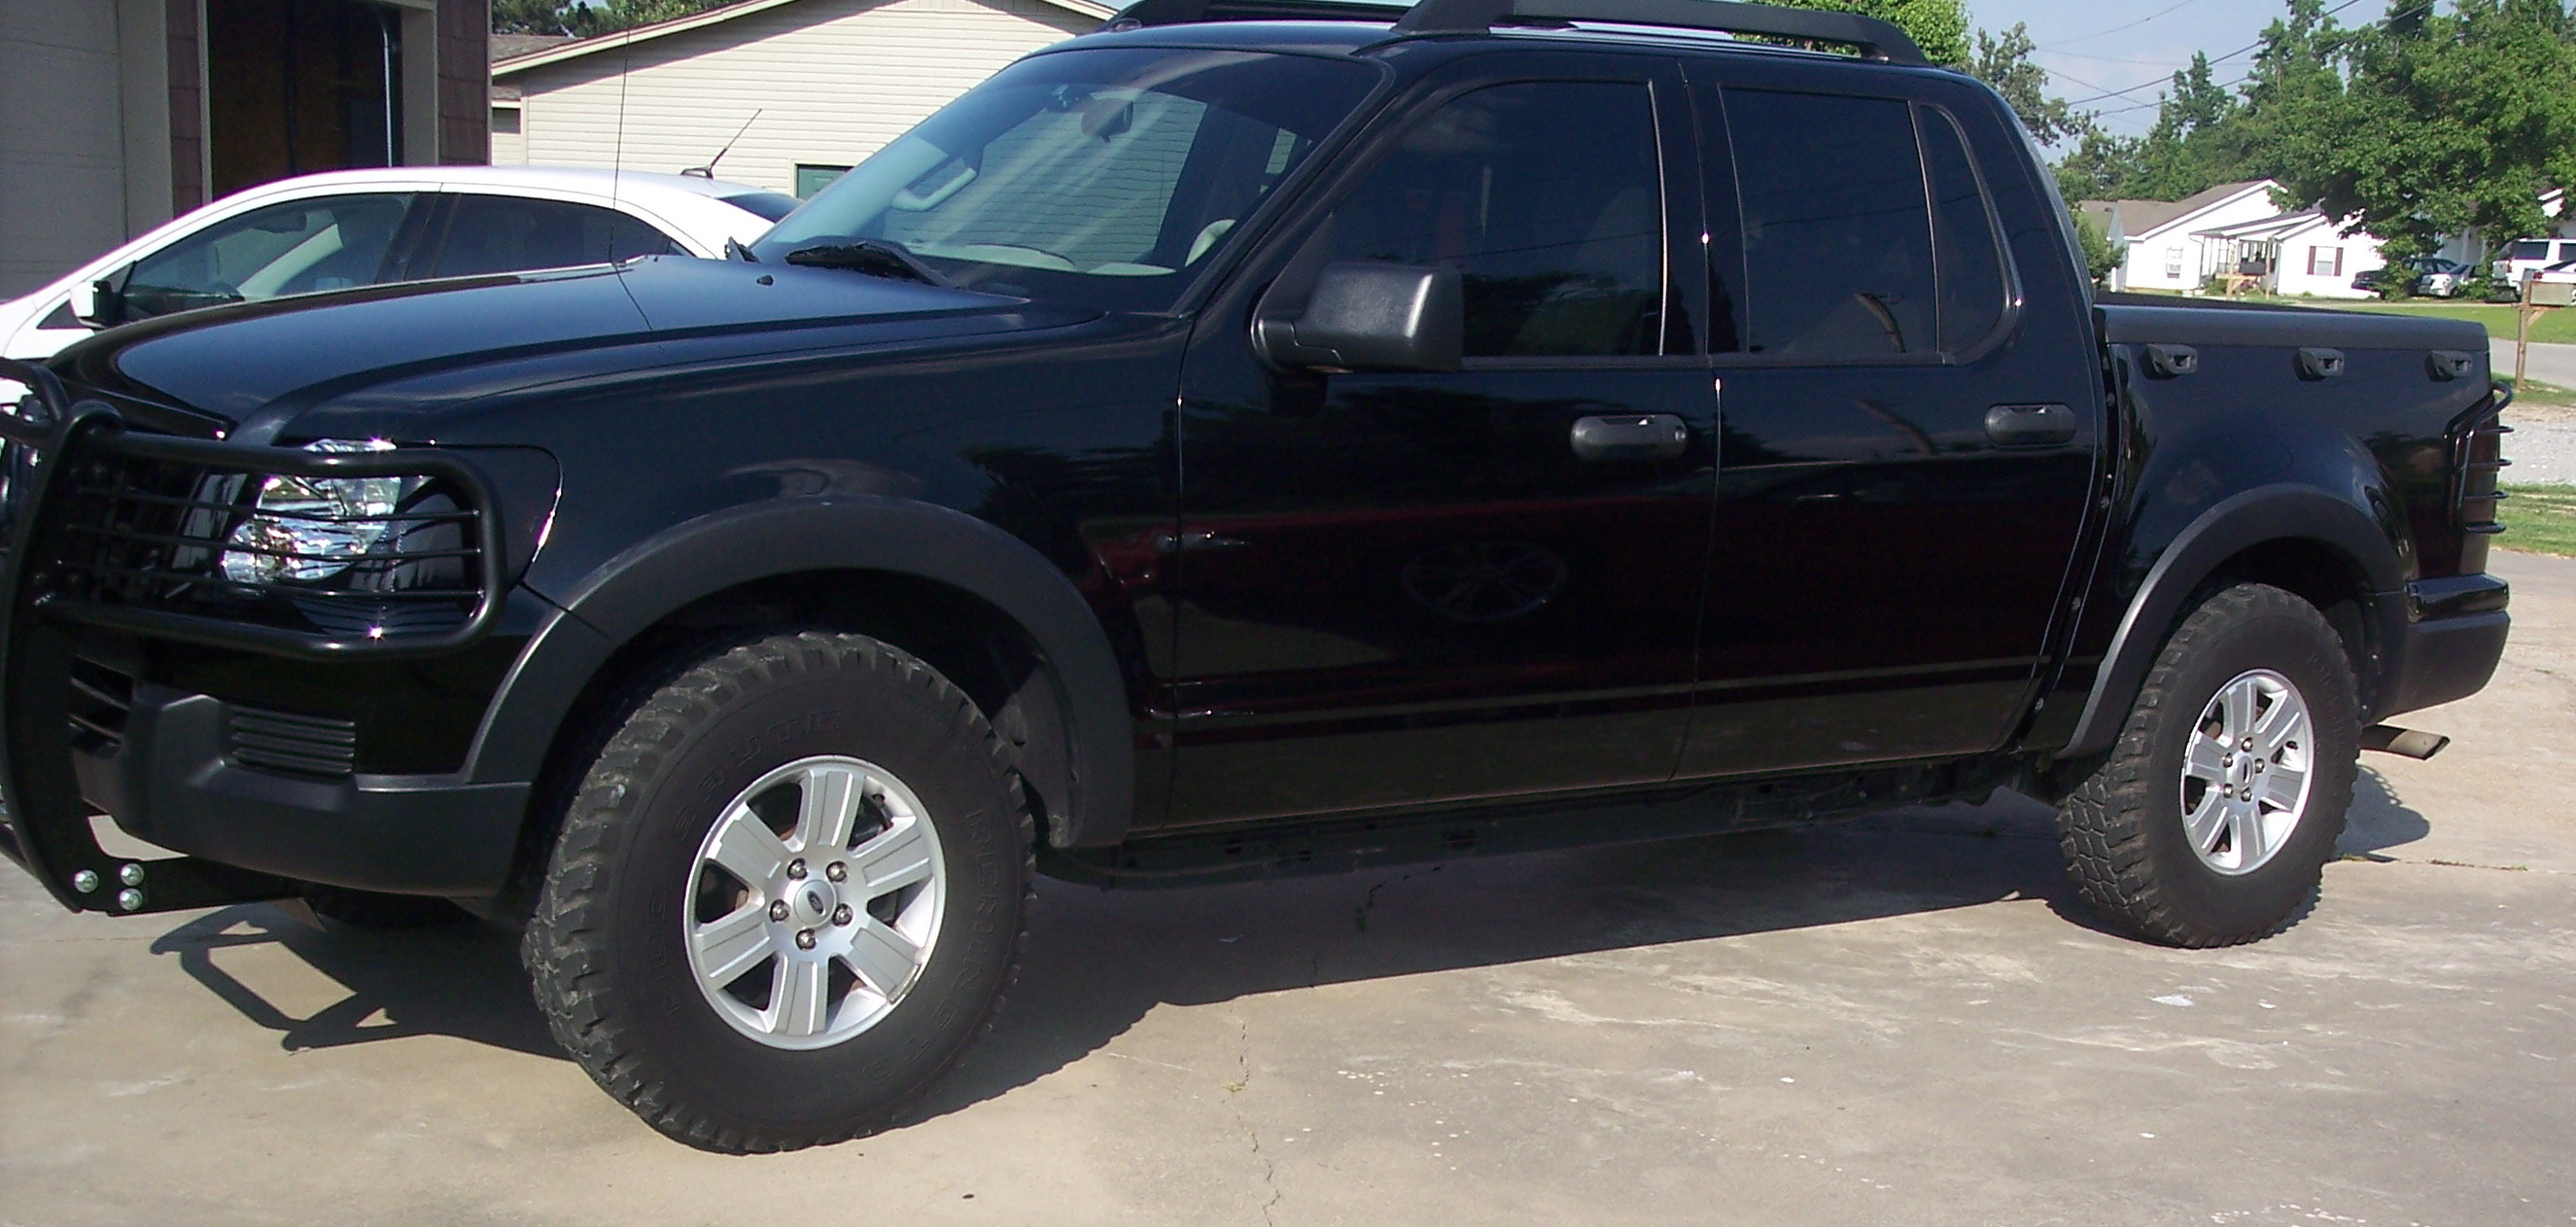 dhousecustoms 2007 ford explorer sport trac specs photos. Black Bedroom Furniture Sets. Home Design Ideas